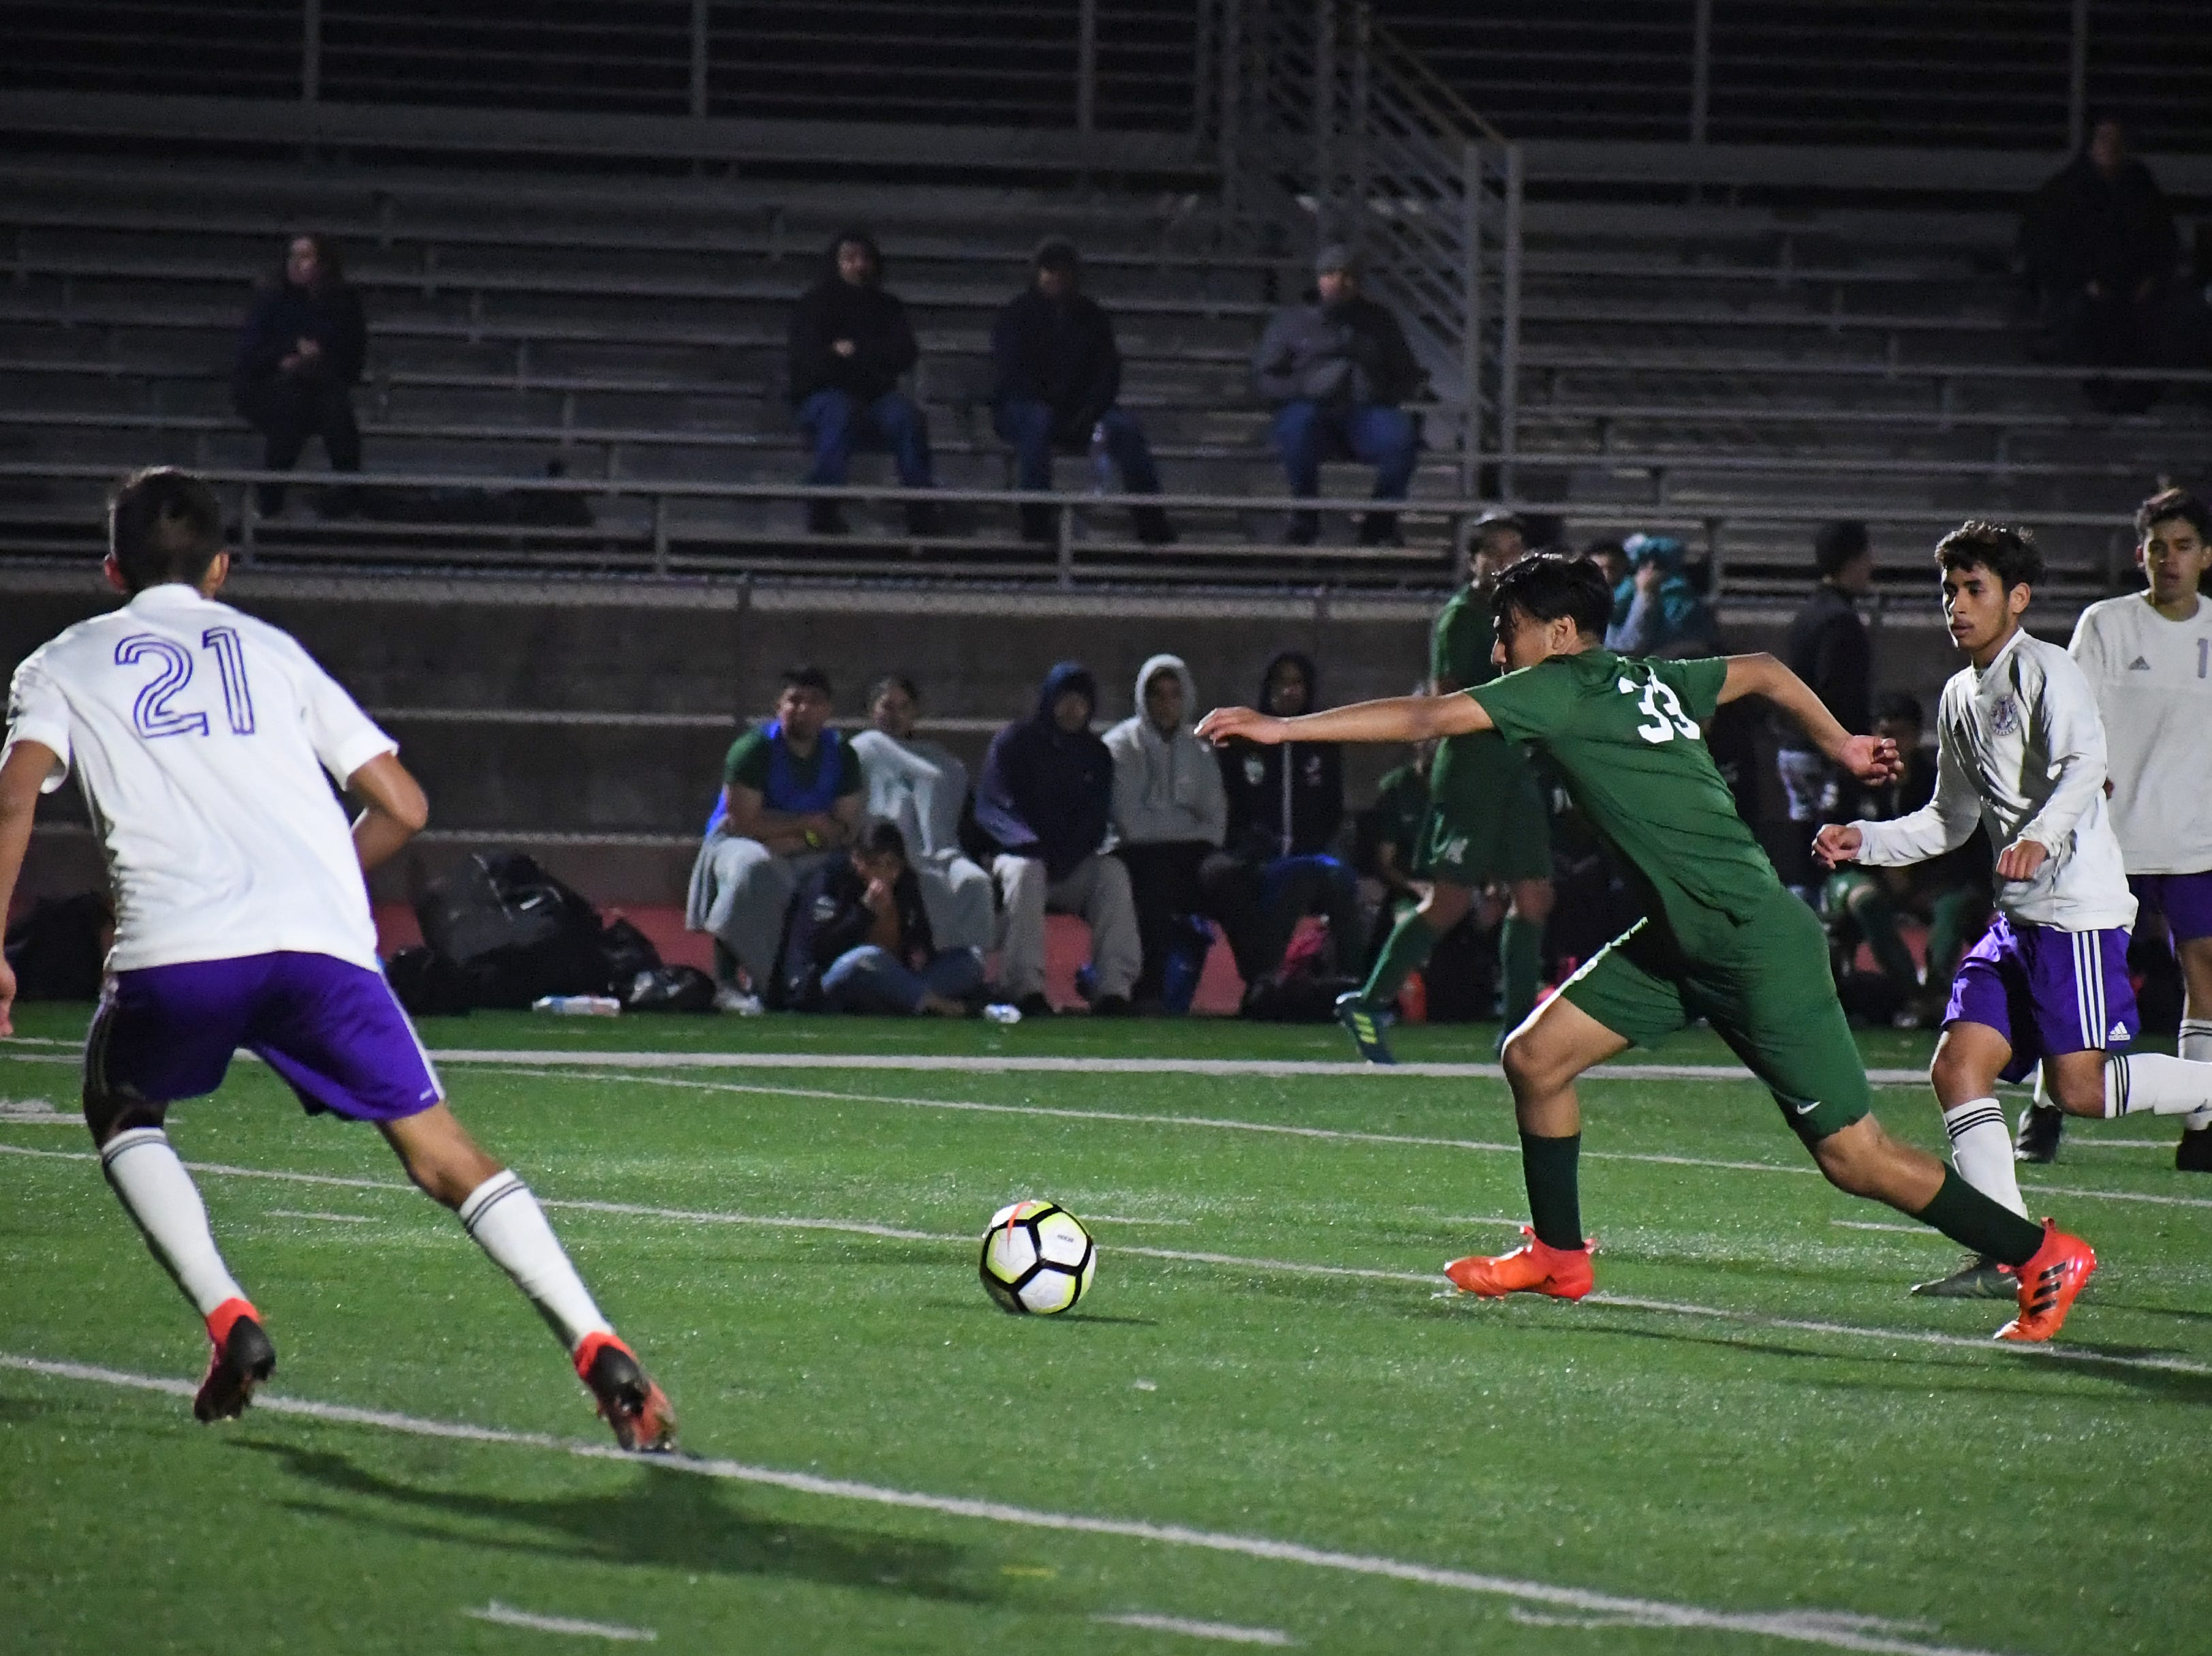 An Alisal forward sprints towards the goal.